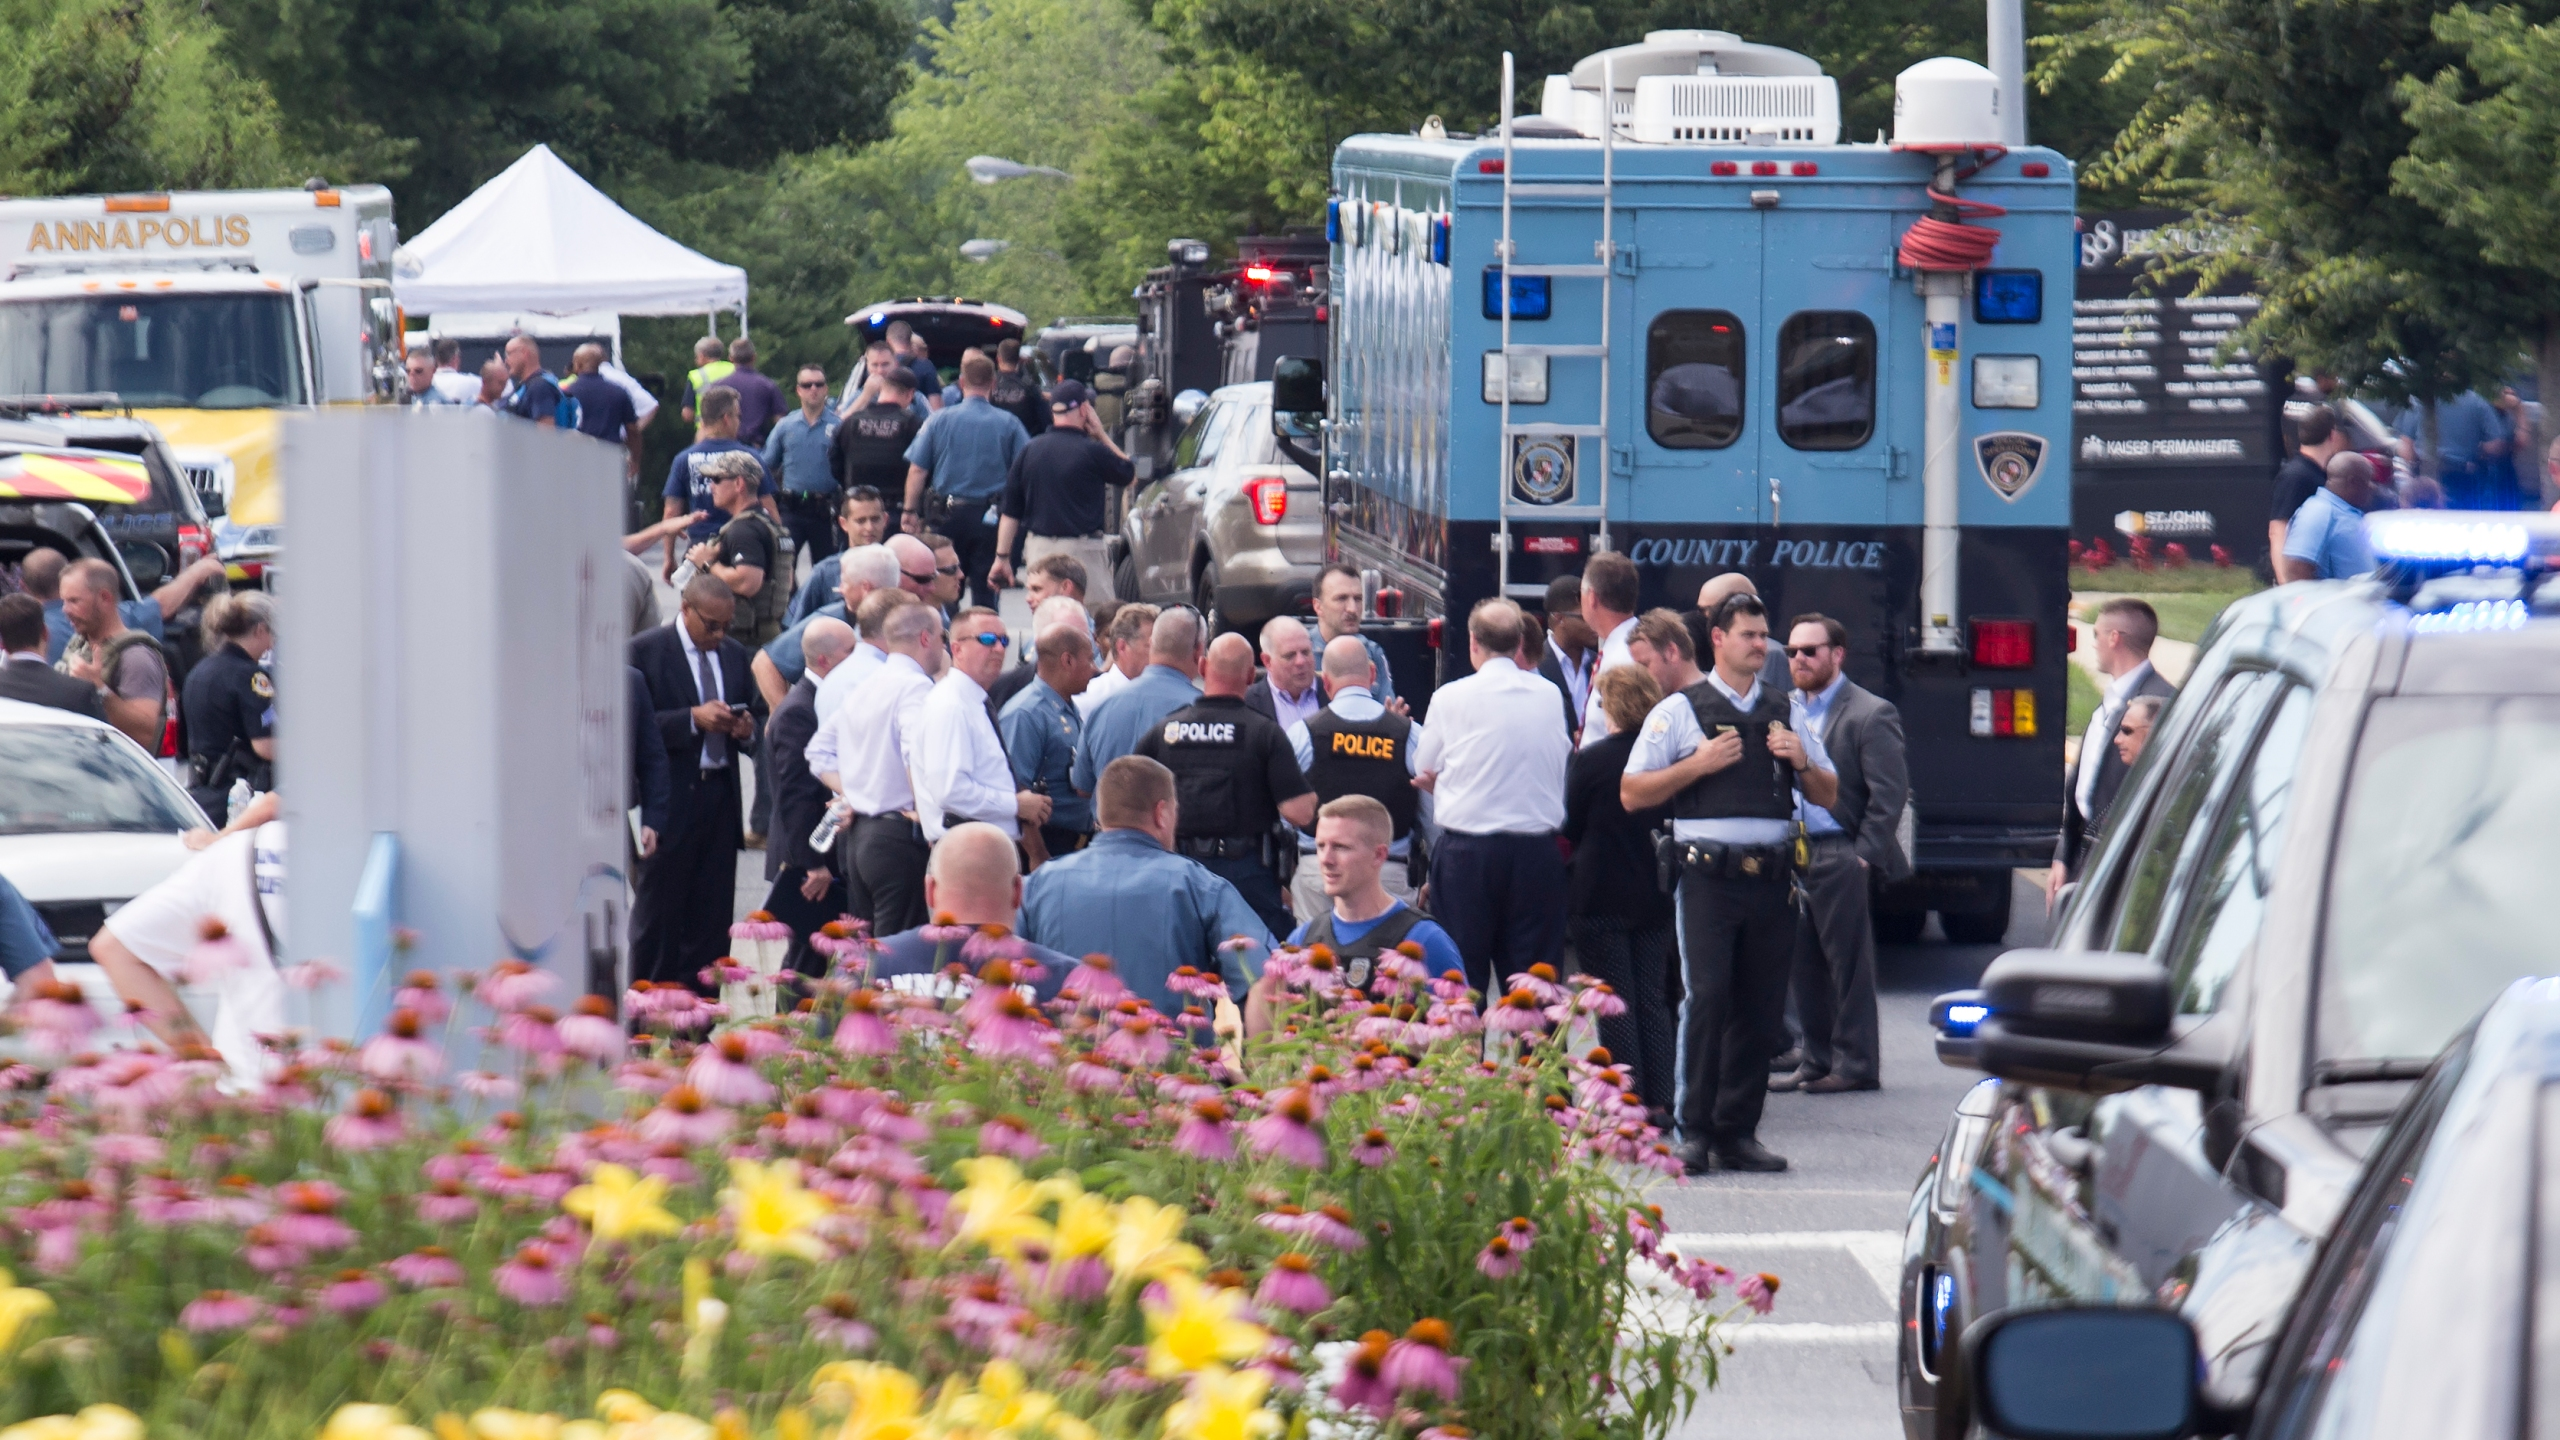 Emergency personnel congregate outside the Capital Gazette newspaper building on June 28, 2018 in Annapolis, Maryland. Five people were killed when a gunman opened fire in the newsroom. (Credit: Alex Wroblewski/Getty Images)